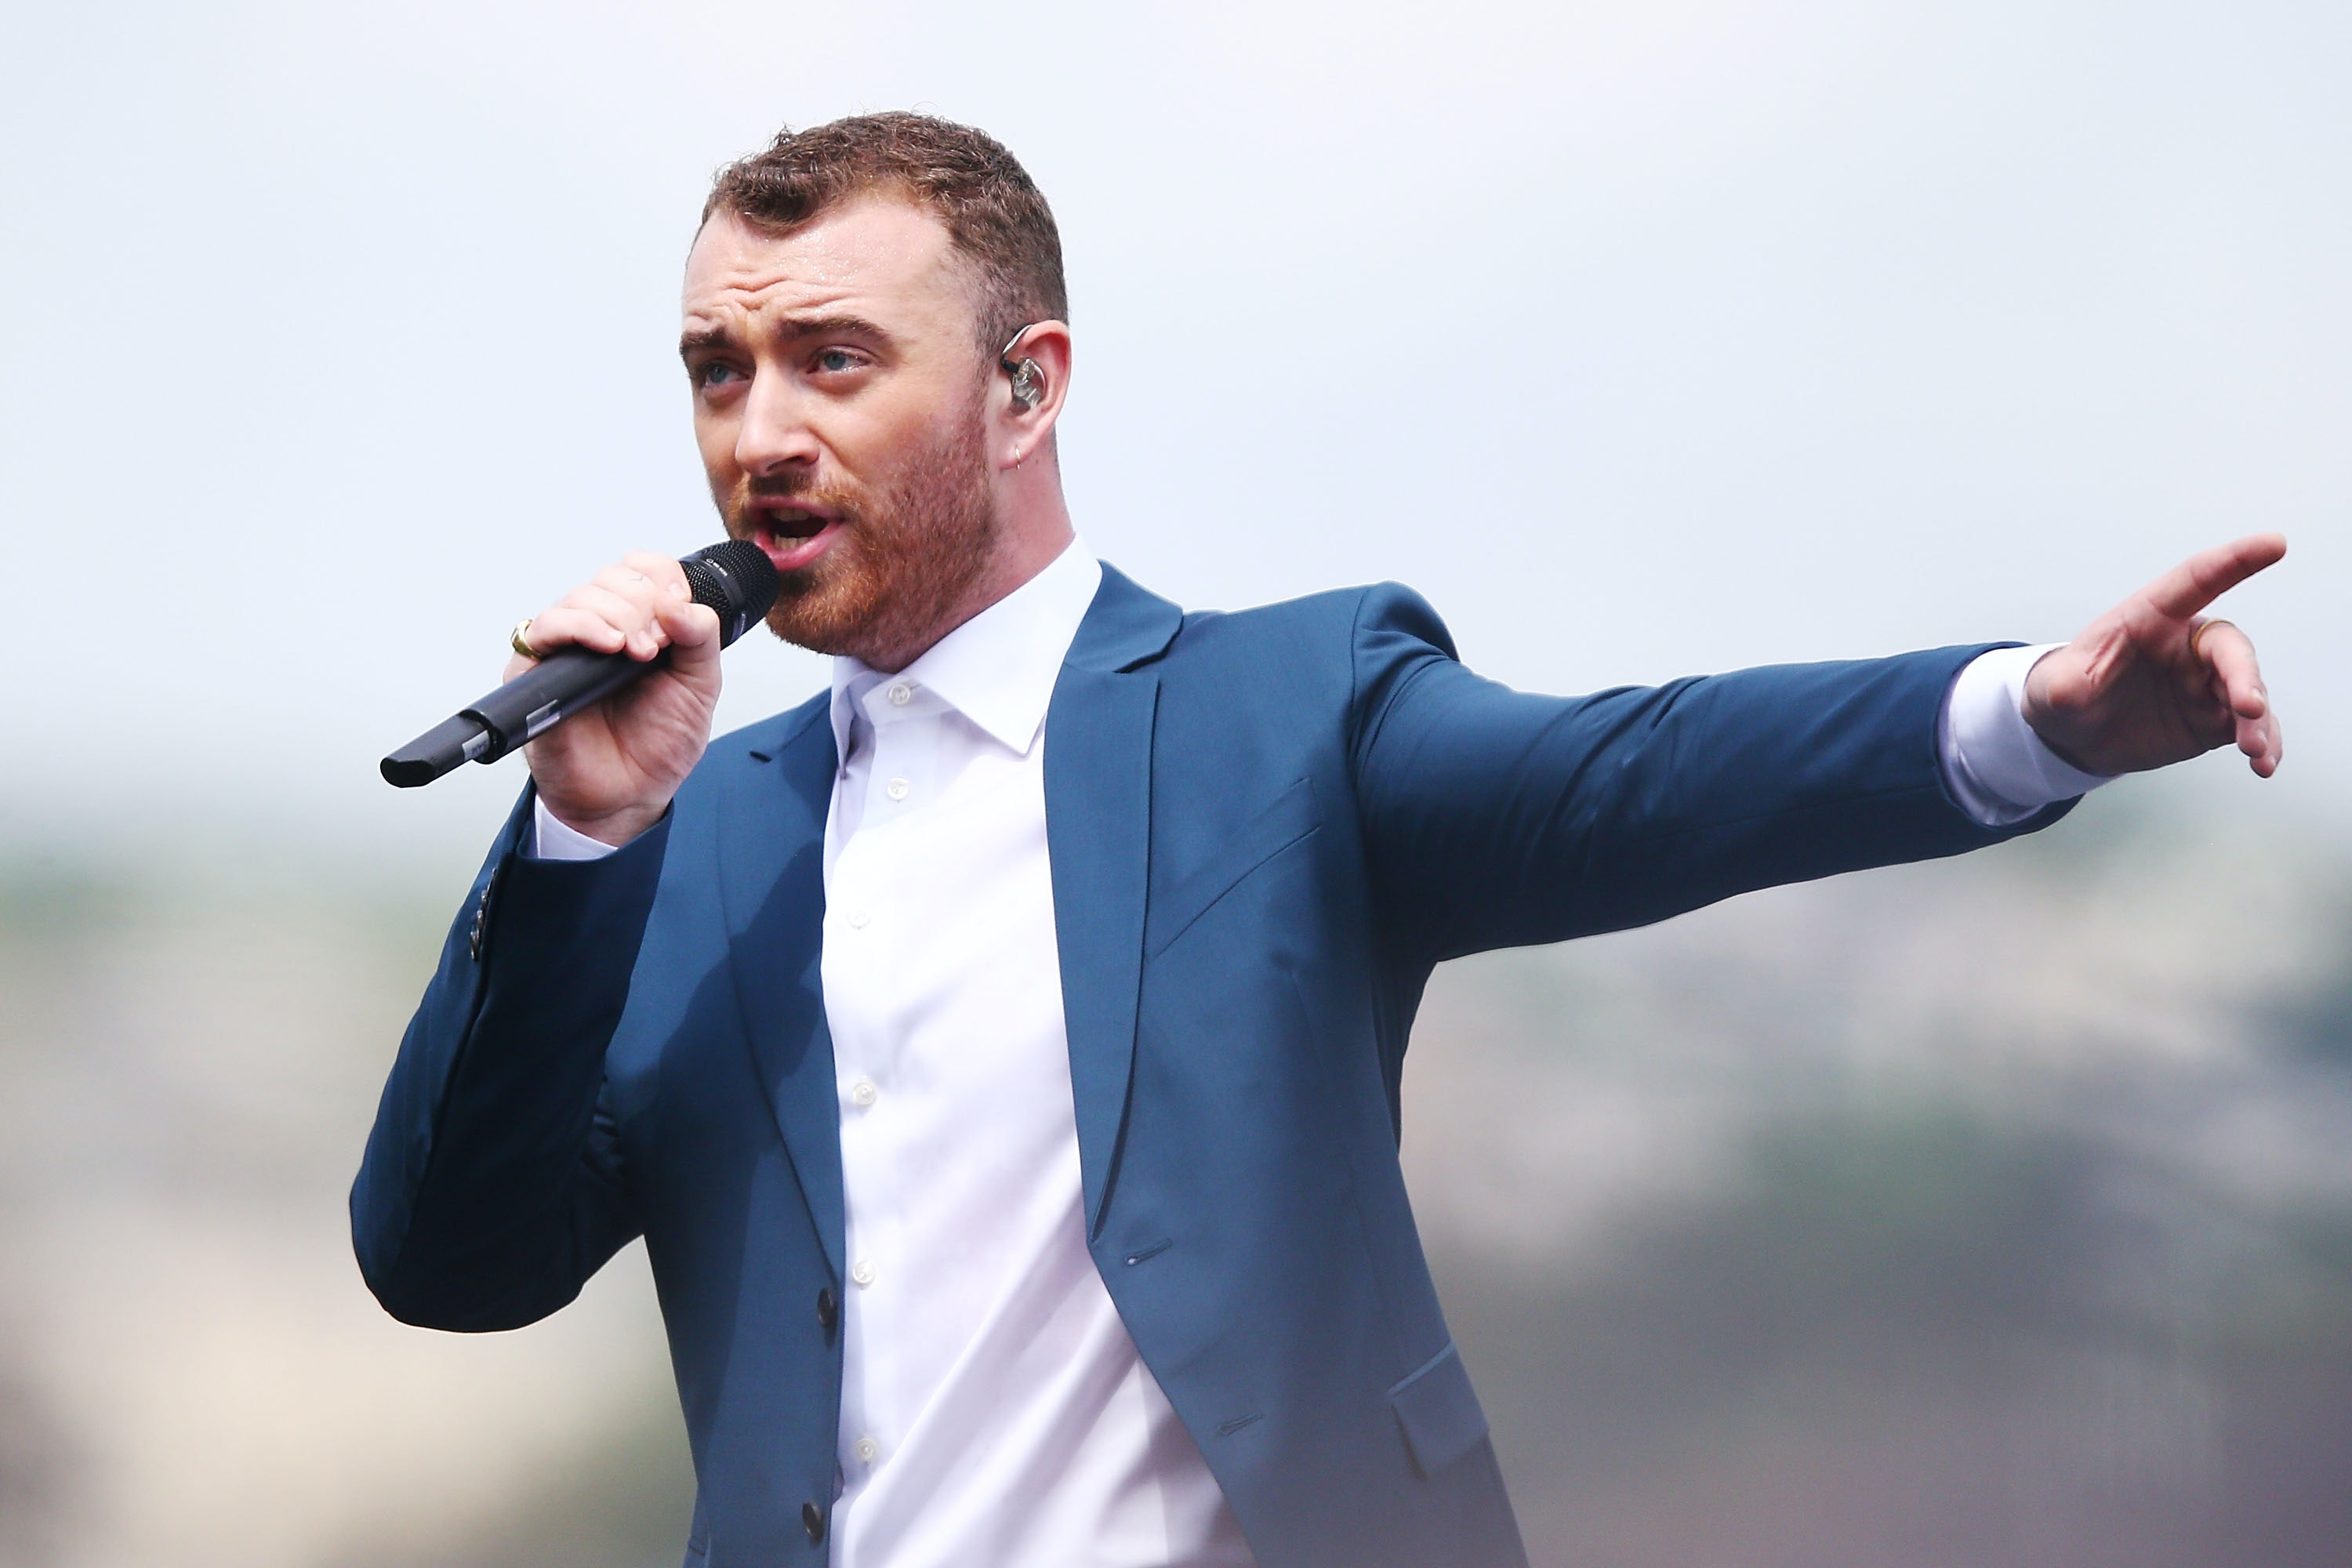 Sam Smith Tour 2020.Will Sam Smith Tour The Uk 2019 I Know I M Not The Only One